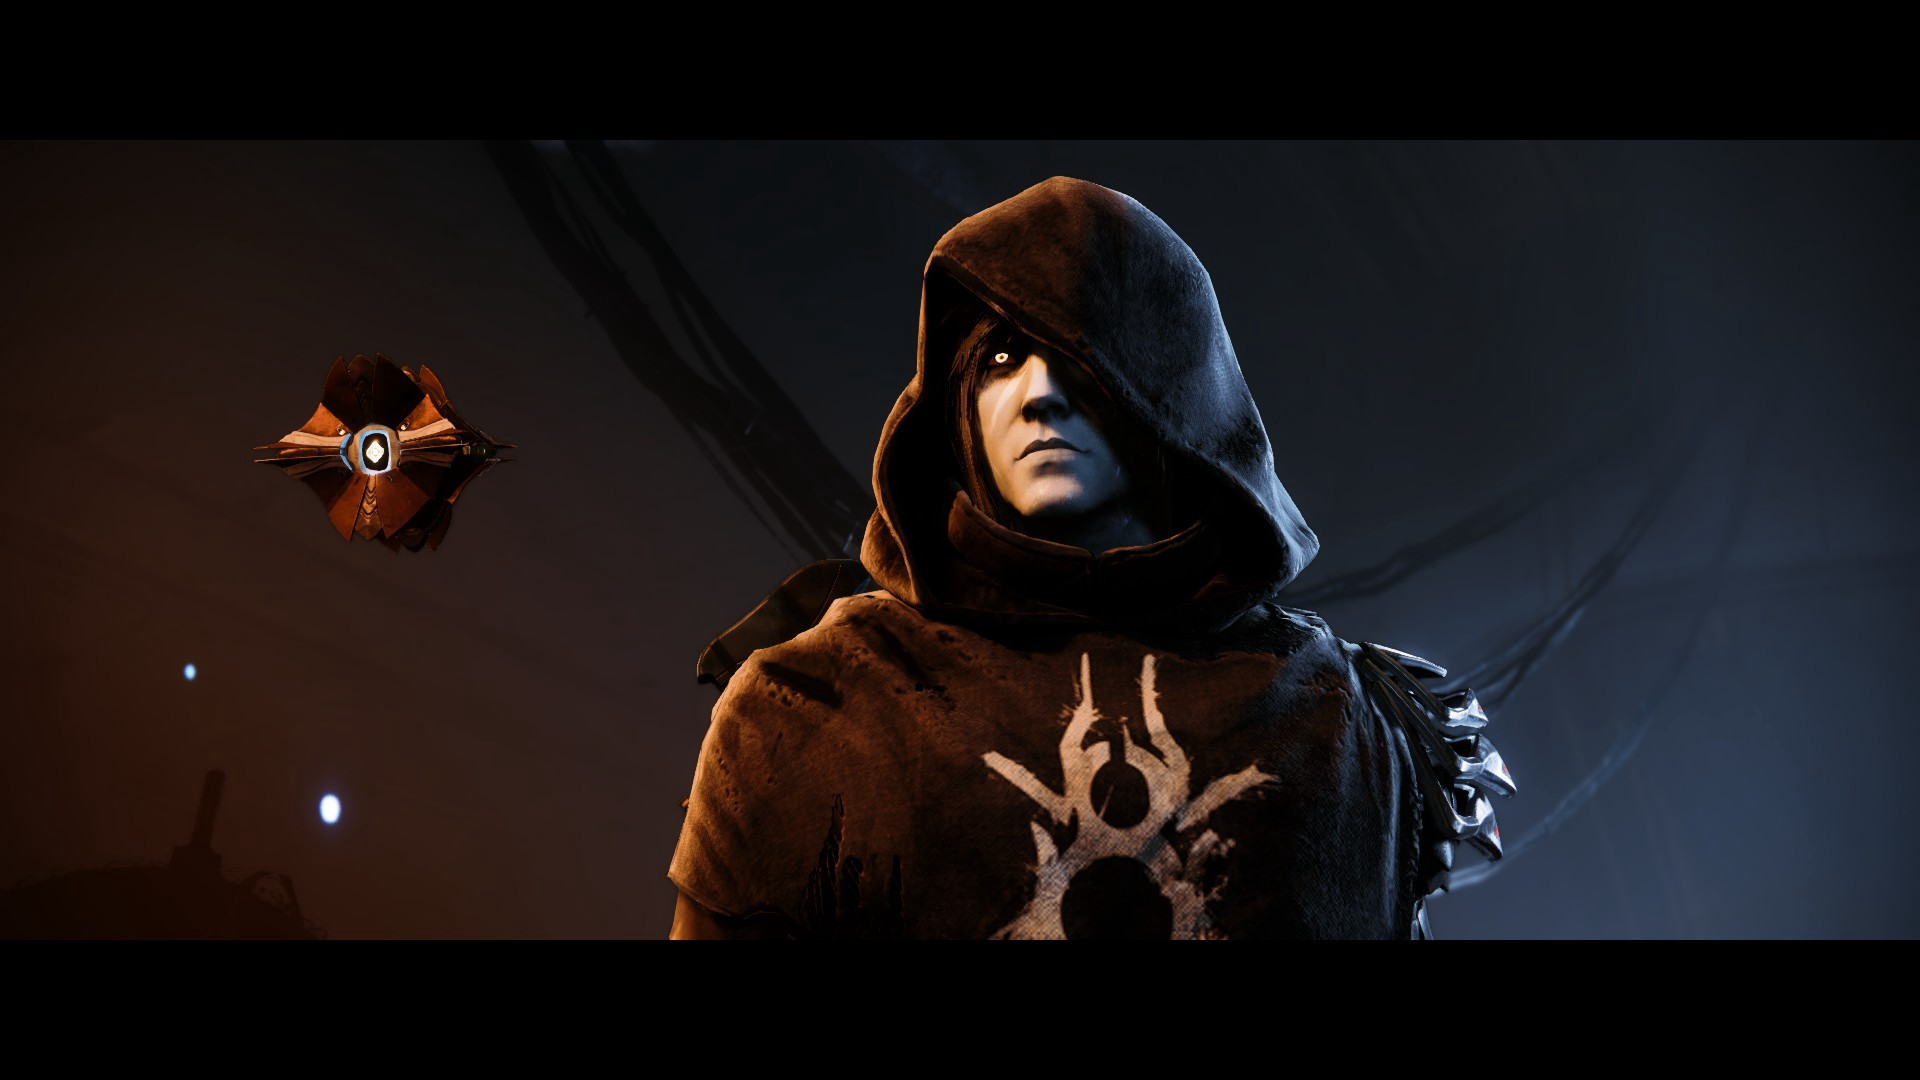 A screenshot of Crow from Destiny 2, a young man with grey skin and glowing yellow eyes wearing a black hooded cloak, with his Ghost, a small floating drone, by his side.